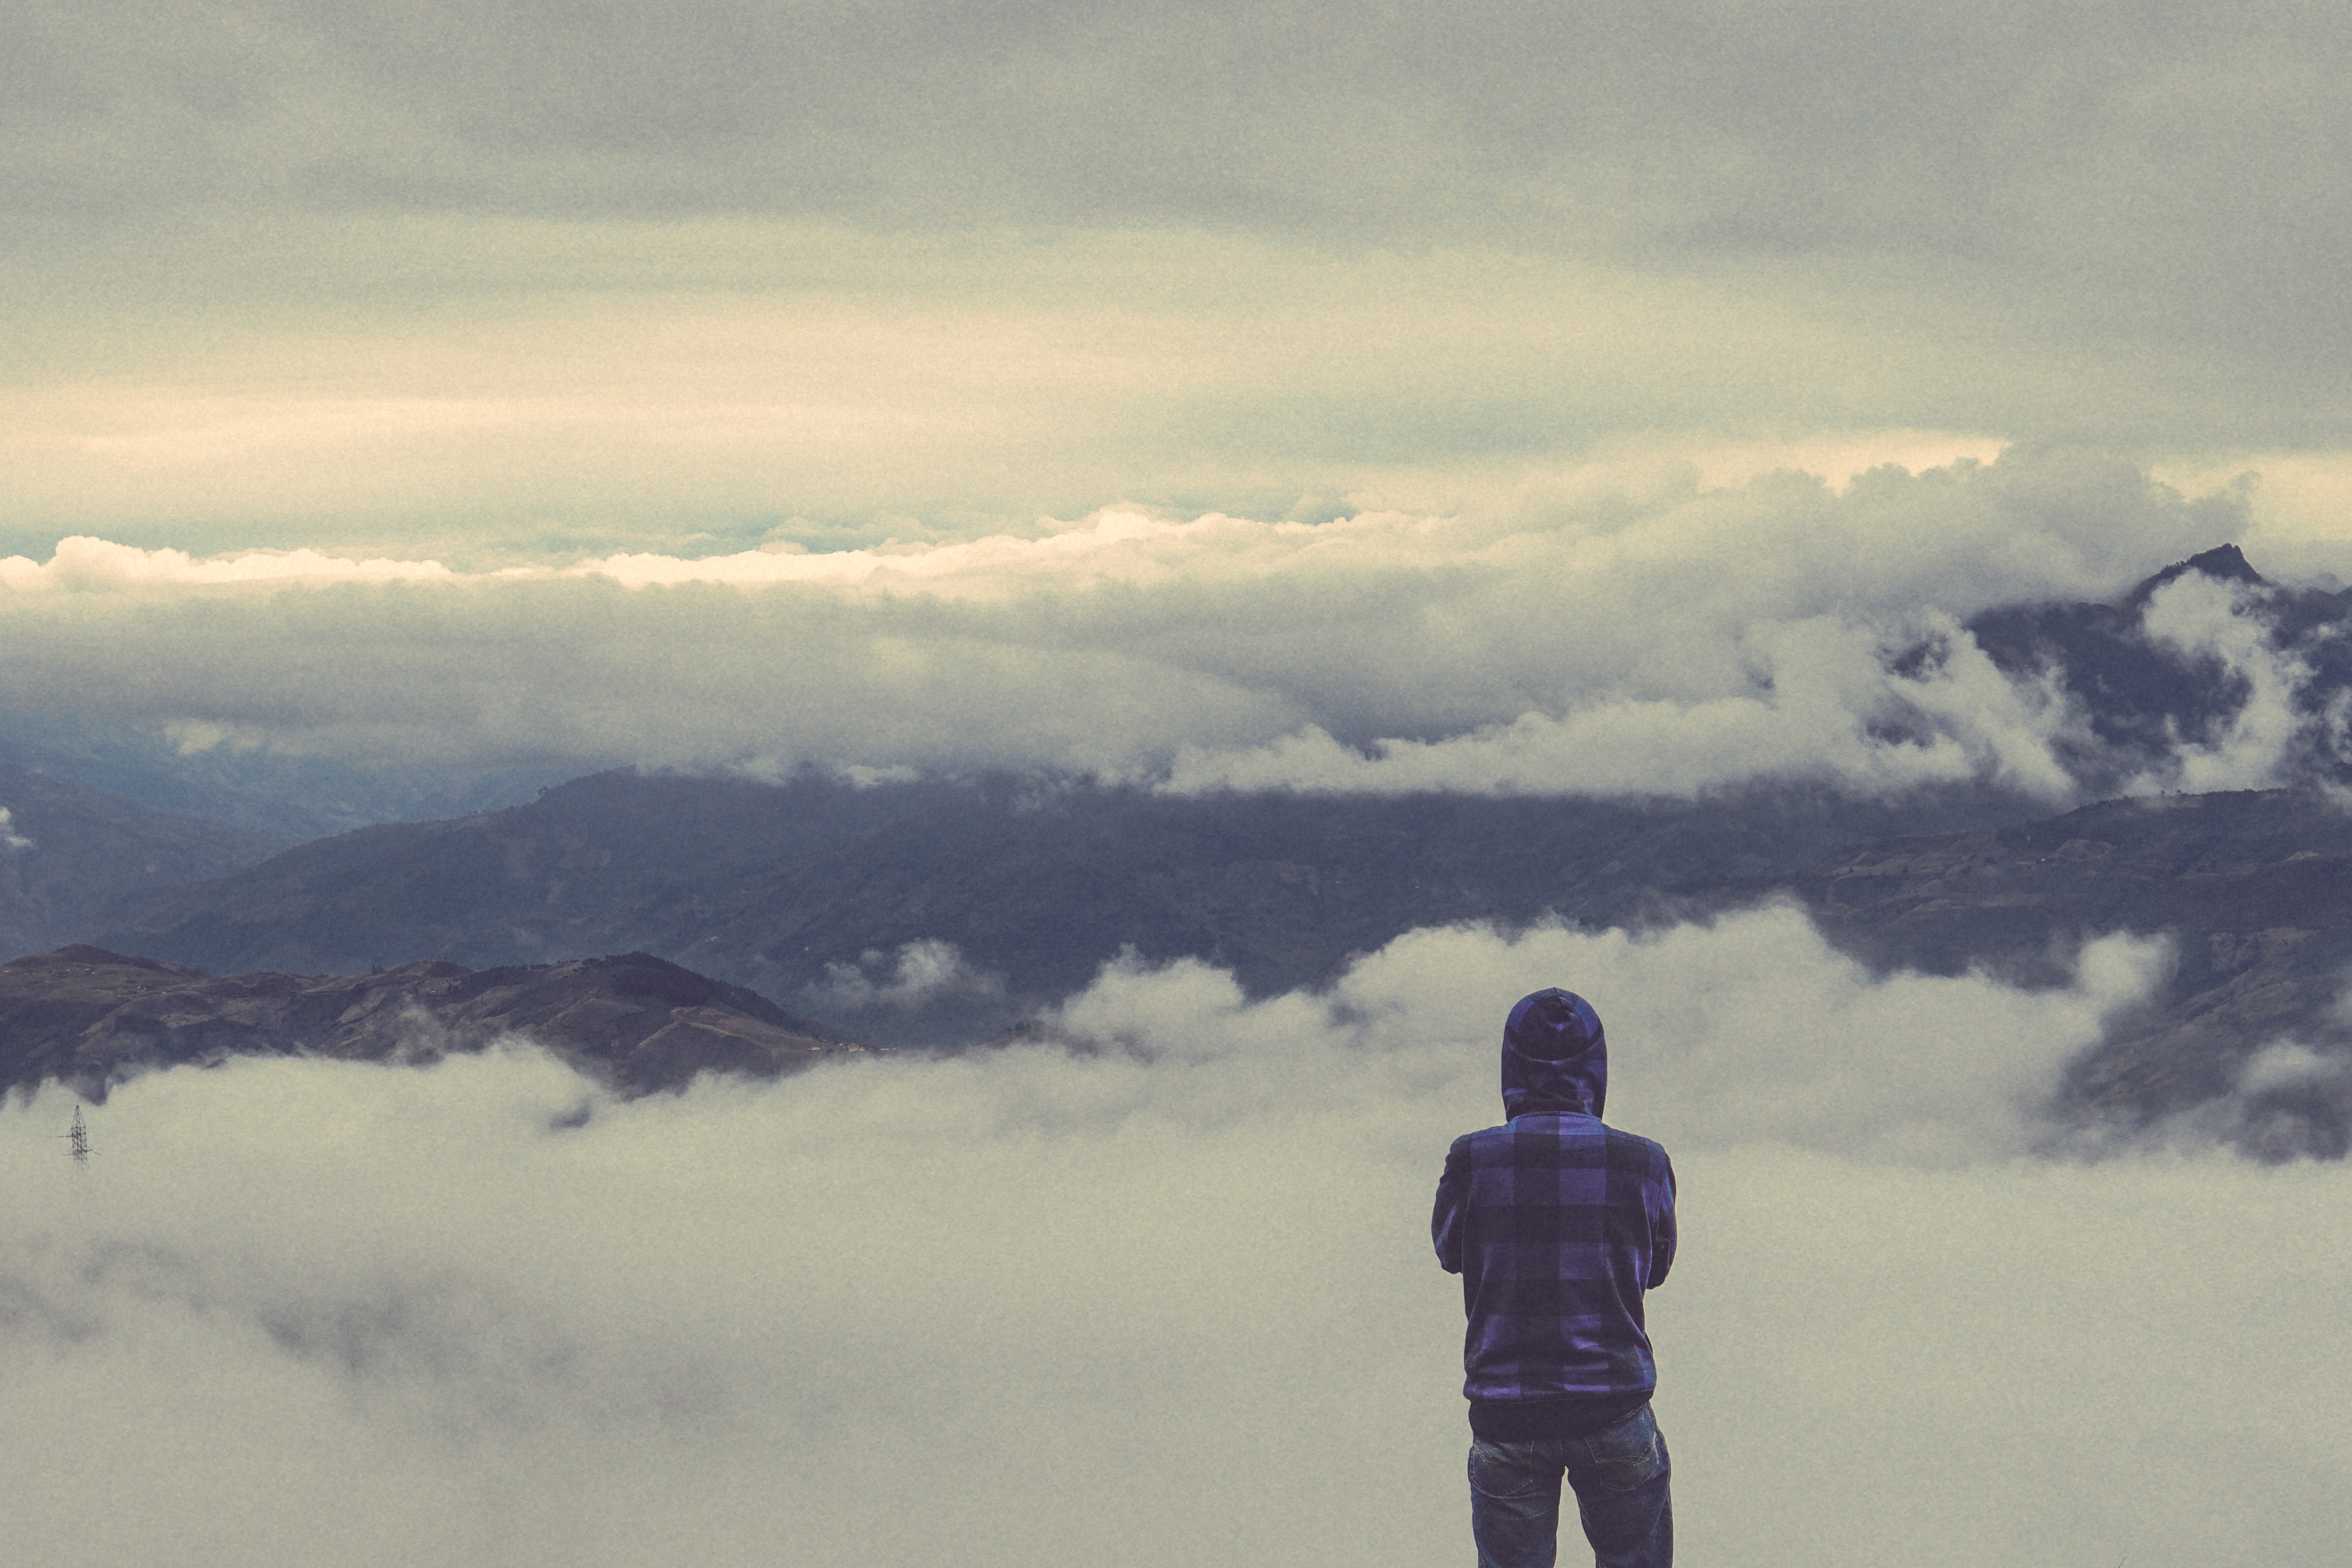 Hiker looks at foggy view of mountains in Tà Xùa